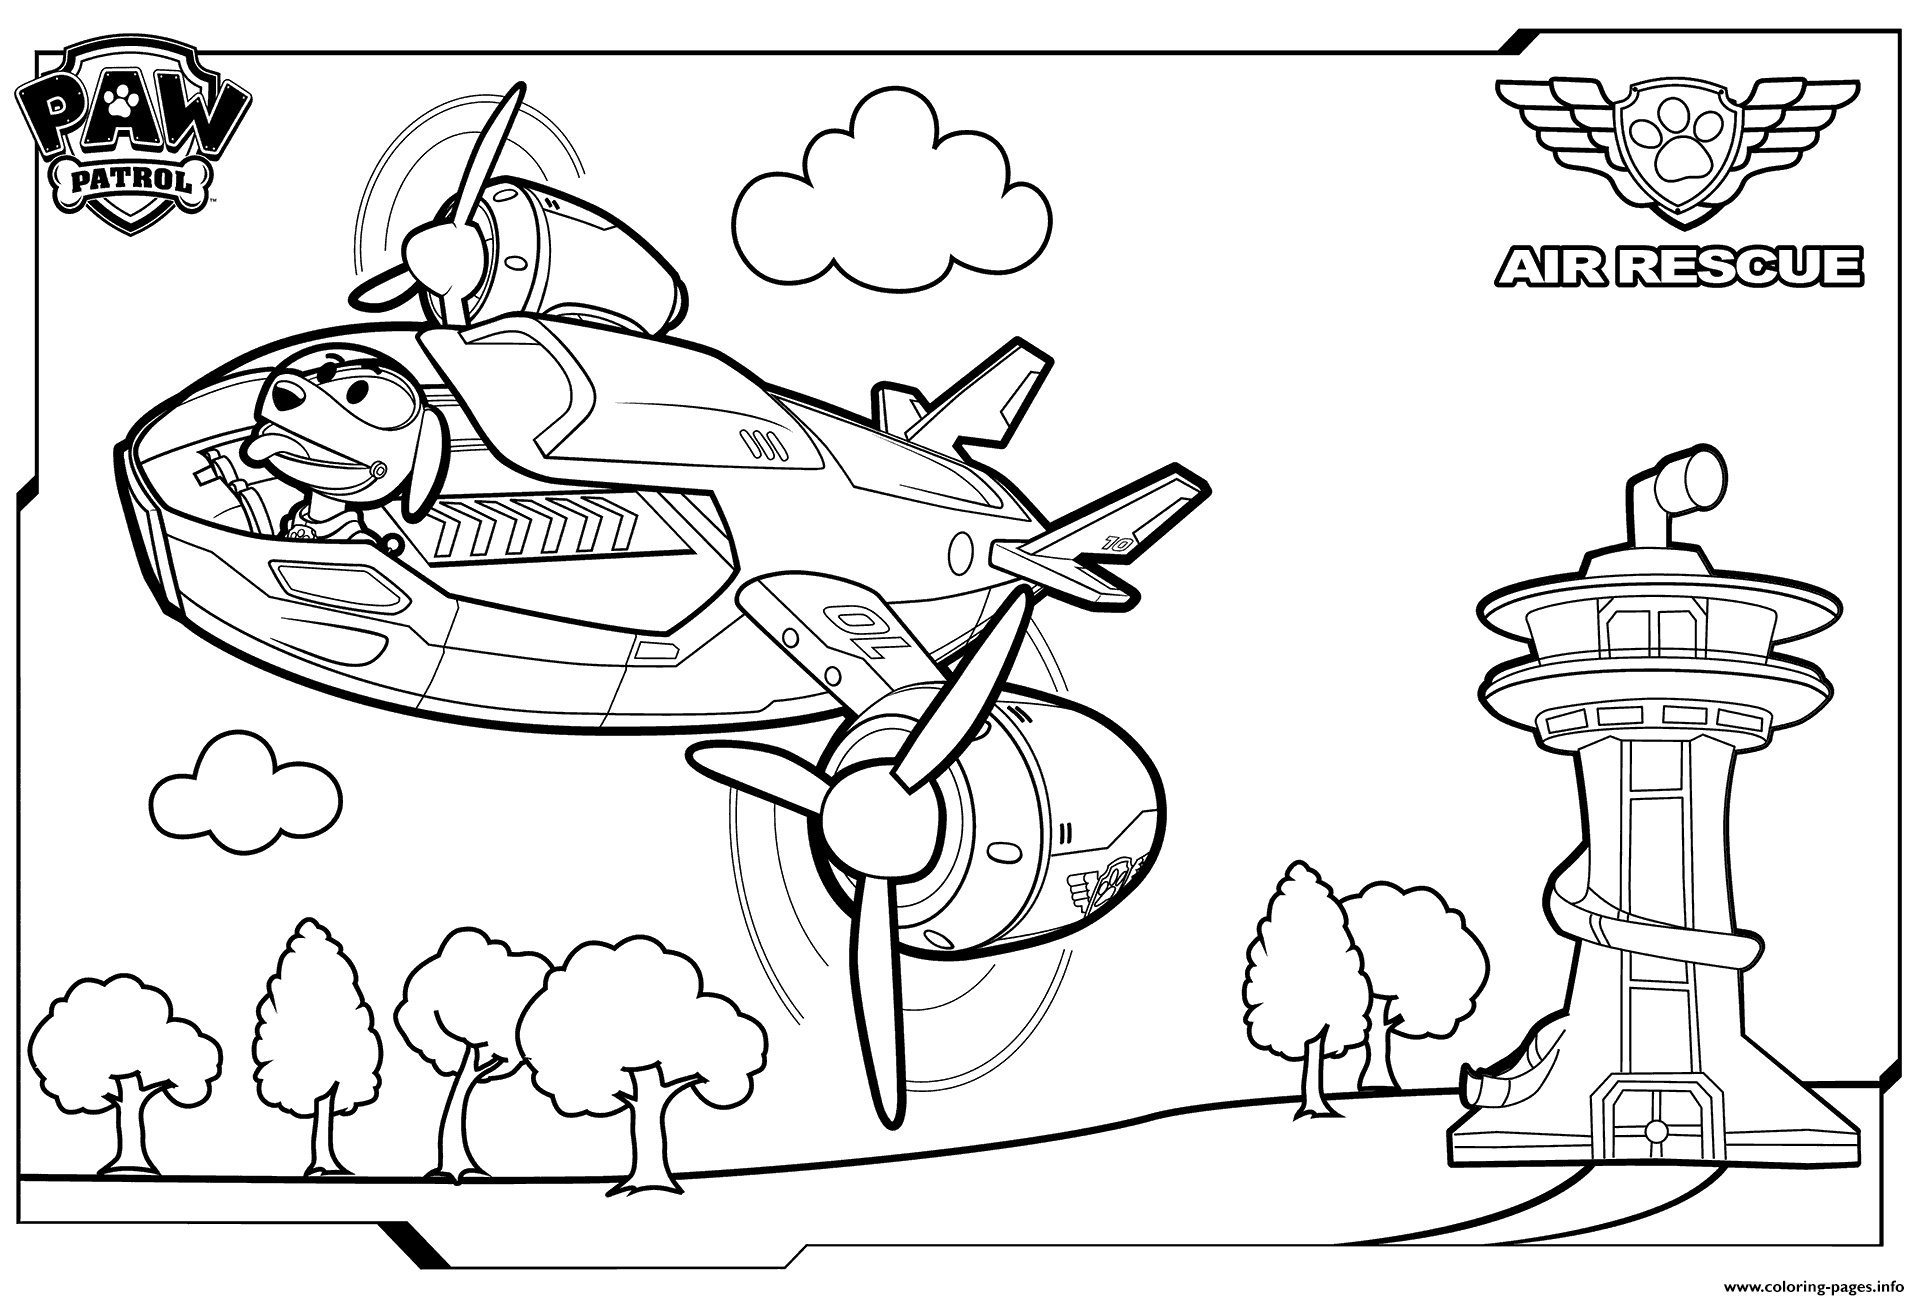 Paw Patrol Air Patroller Coloring Coloring Pages Printable